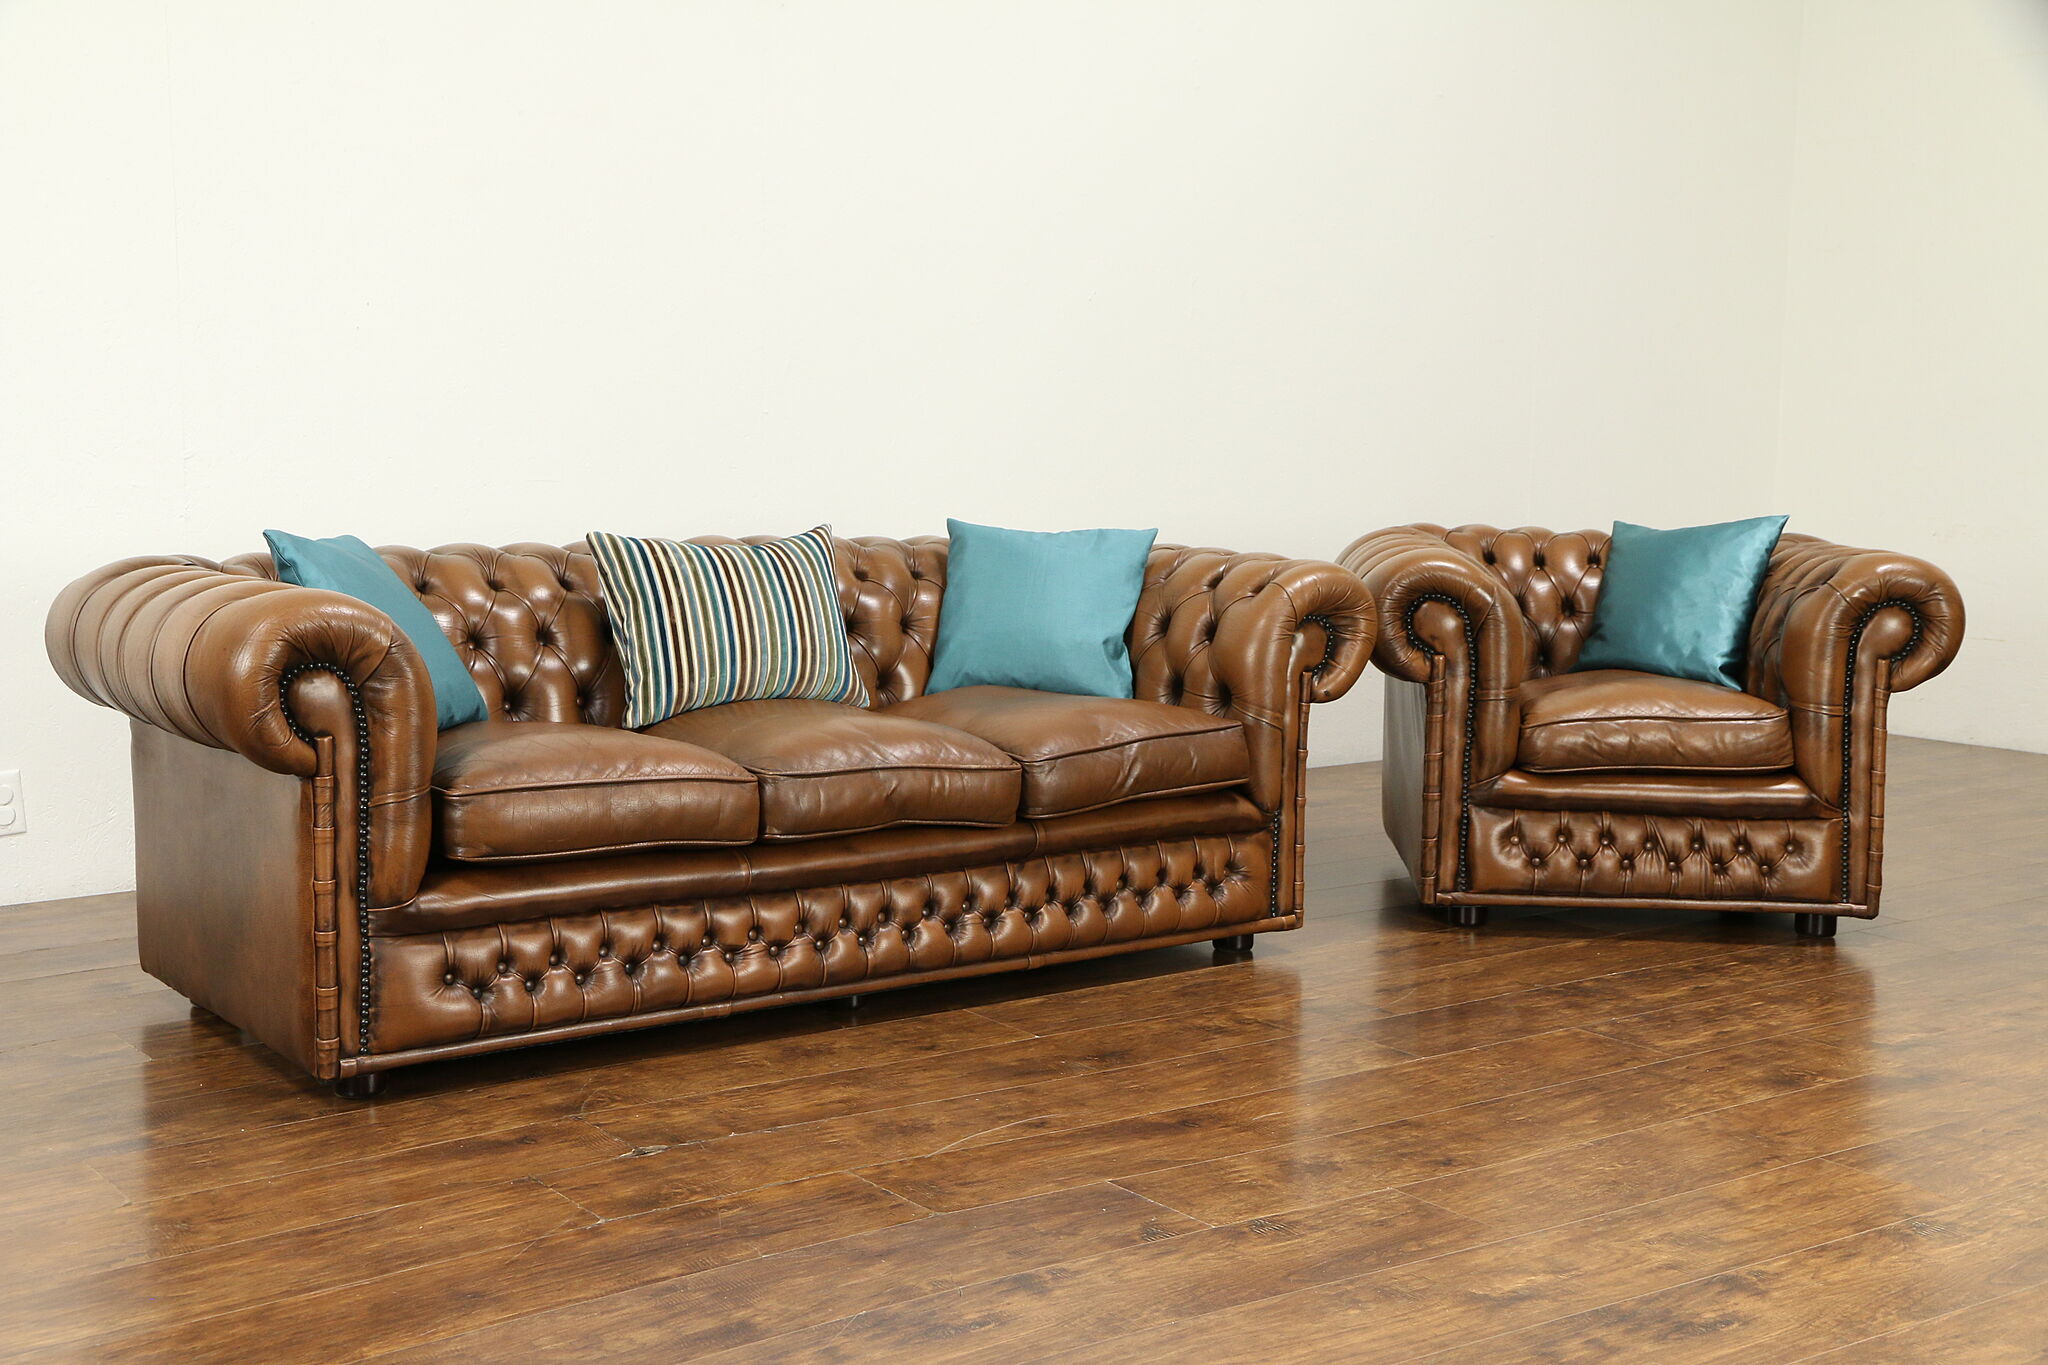 Chesterfield Tufted Brown Leather Vintage Scandinavian Sofa #31752